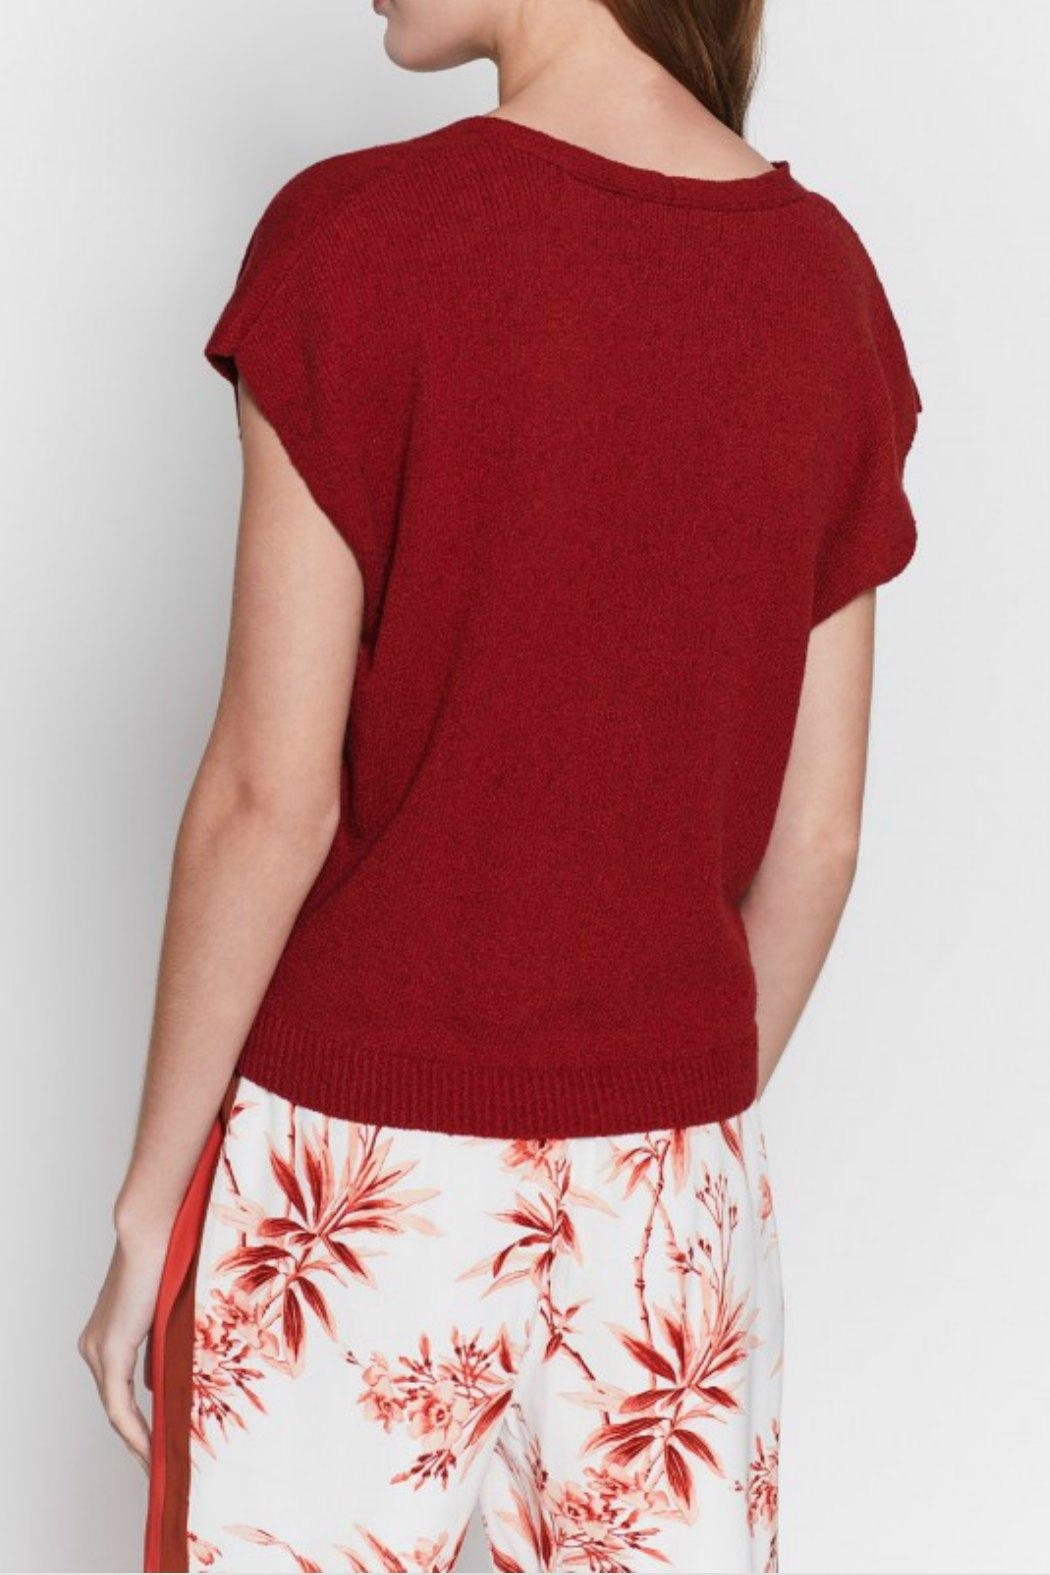 Joie Alenah Cap-Sleeve Sweater - Back Cropped Image